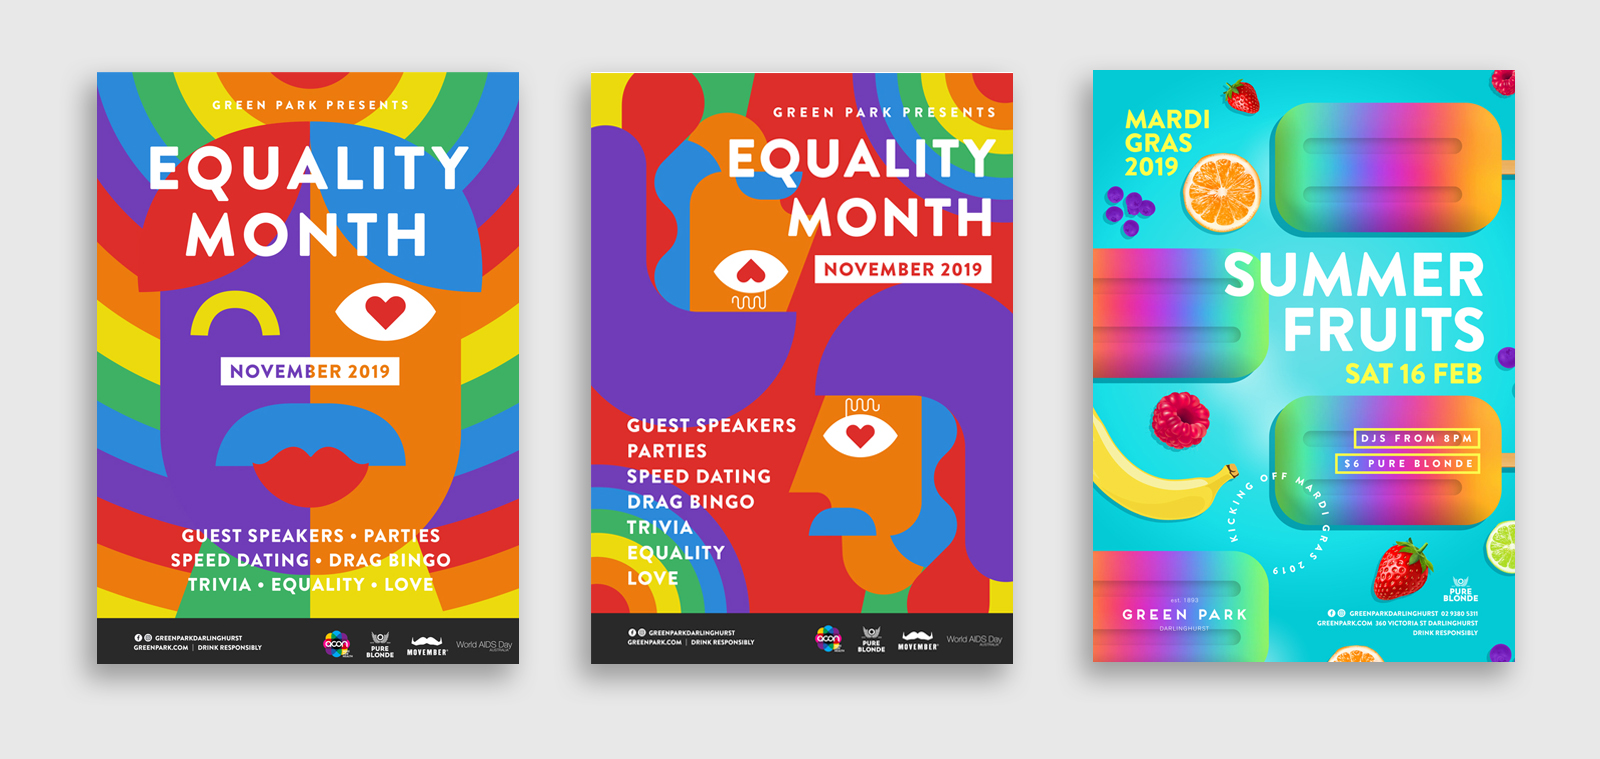 series of poster designs for mardi gras equality month at greenpark by sydney design social